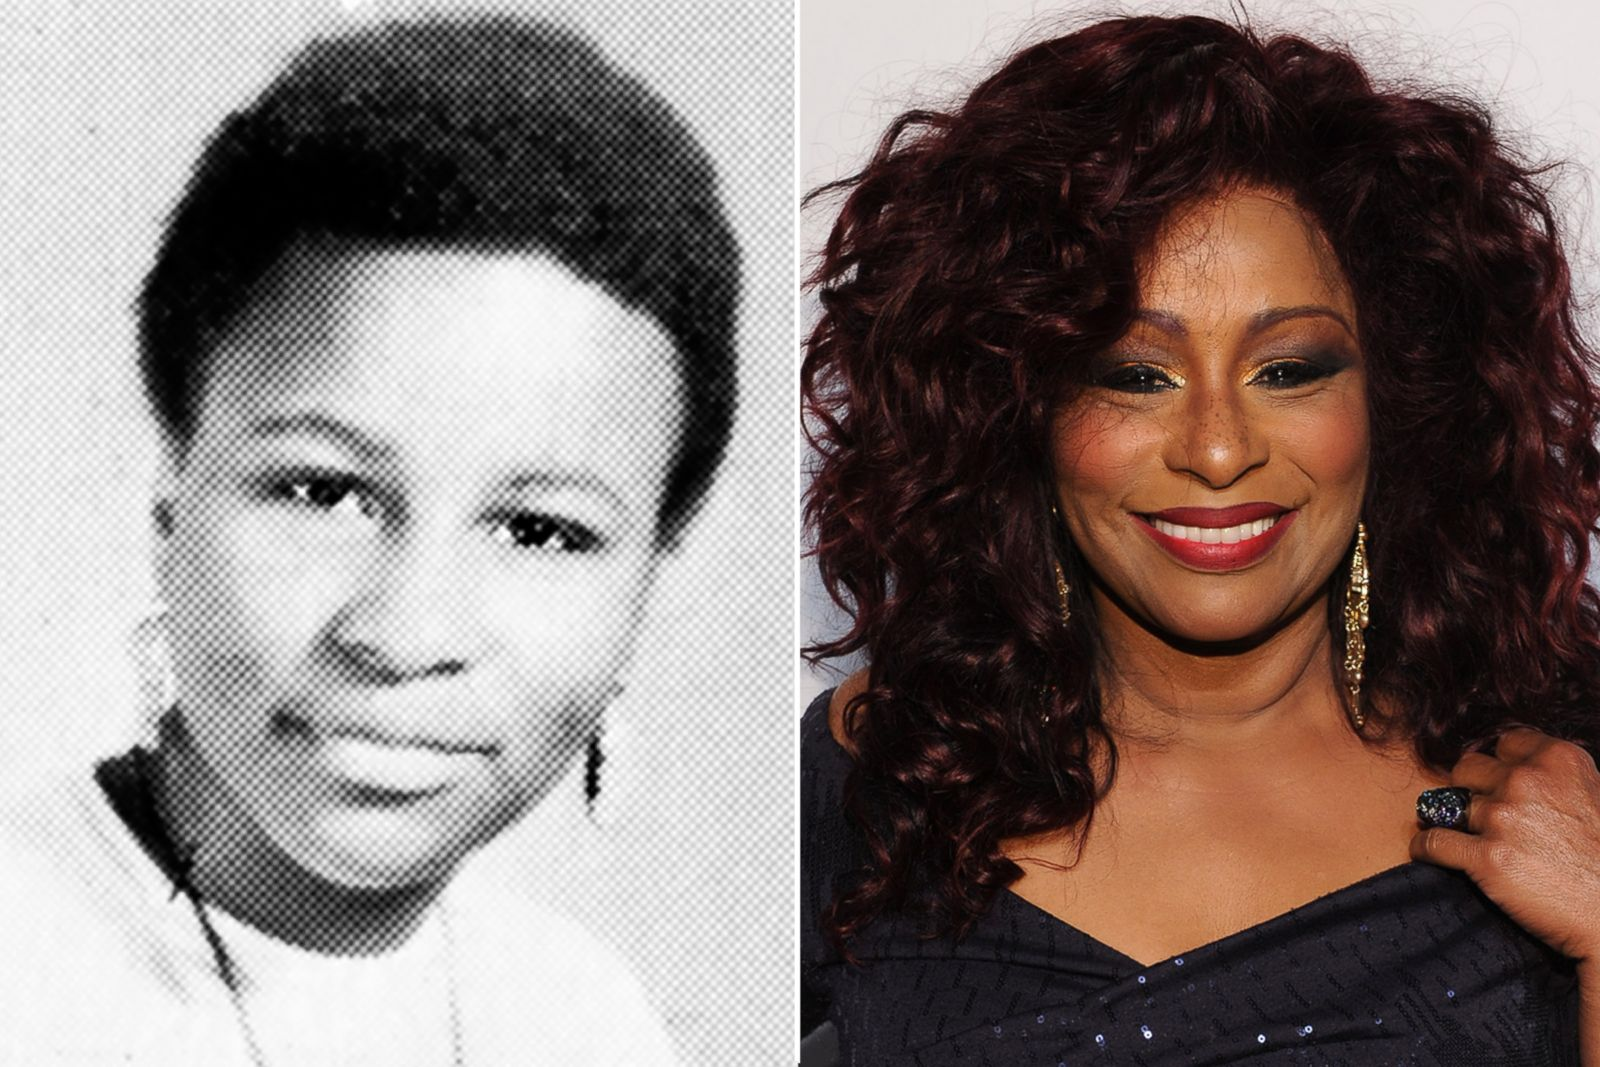 ' ' from the web at 'https://s.abcnews.com/images/Entertainment/HT-GTY-ChakaKhan-ml-170323_3x2_1600.jpg'